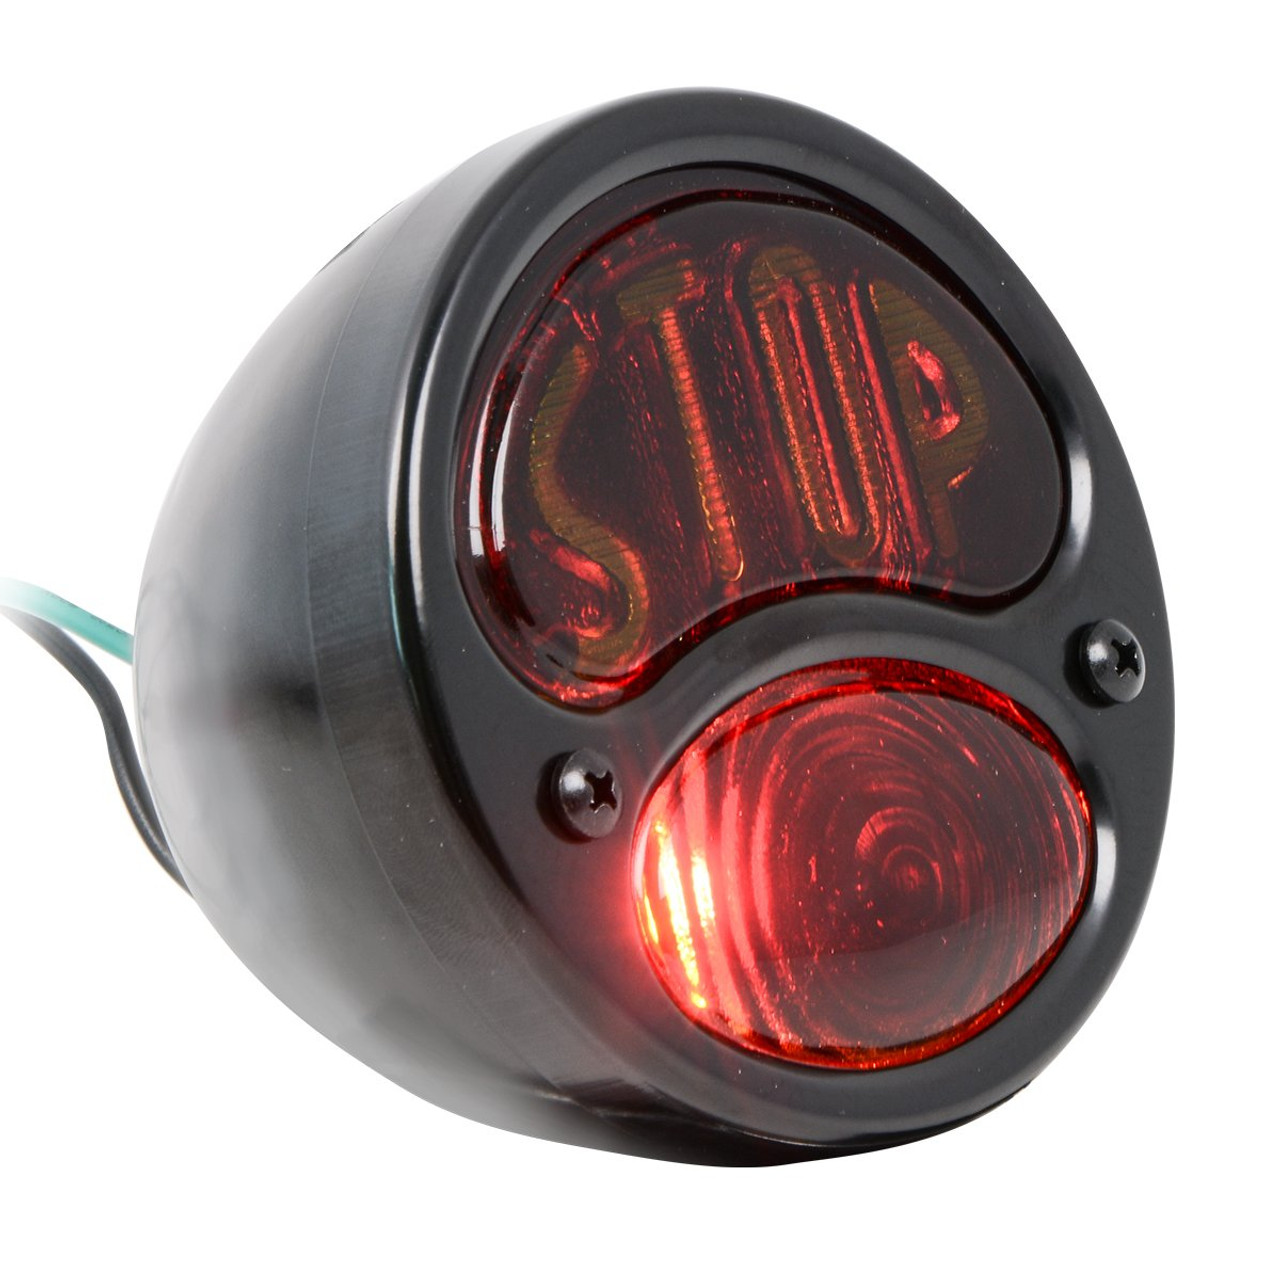 """KNS Accessories KA0022 Black 12V Duolamp Tail Light for Ford Model A with Amber """"STOP"""" Script on Red Glass Lens"""